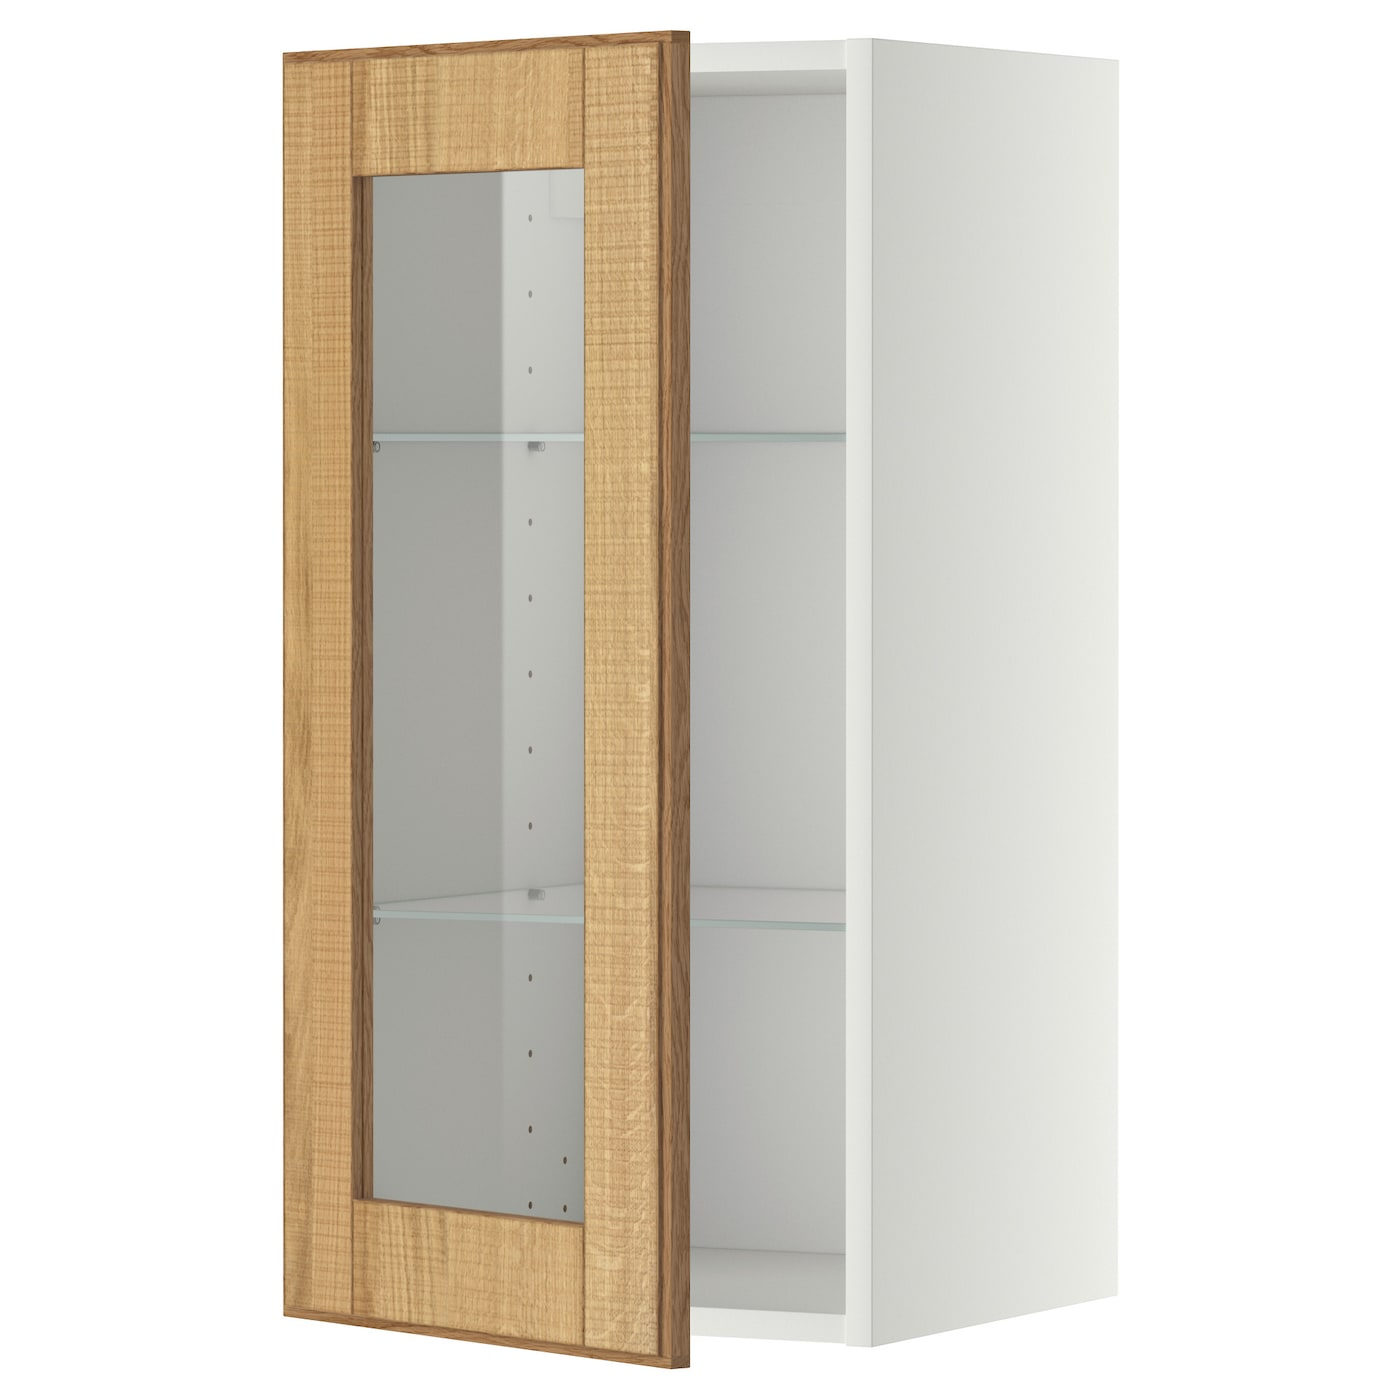 Metod Wall Cabinet W Shelves Glass Door White Hyttan Oak